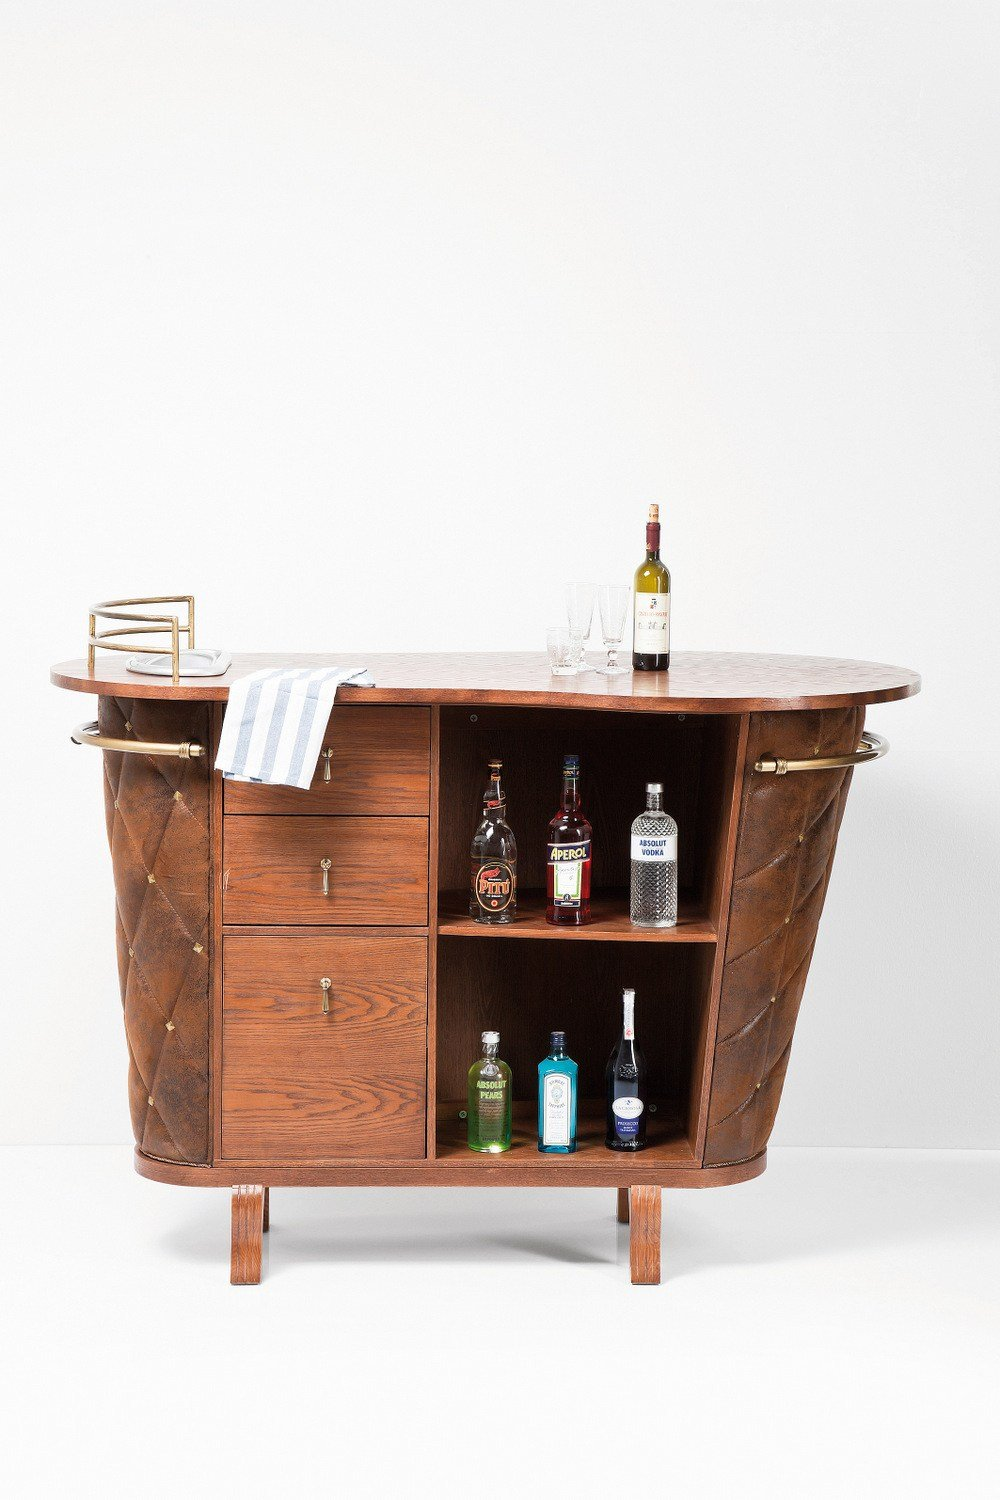 Rockstar vintage mueble bar by kare design for Bar de madera vintage